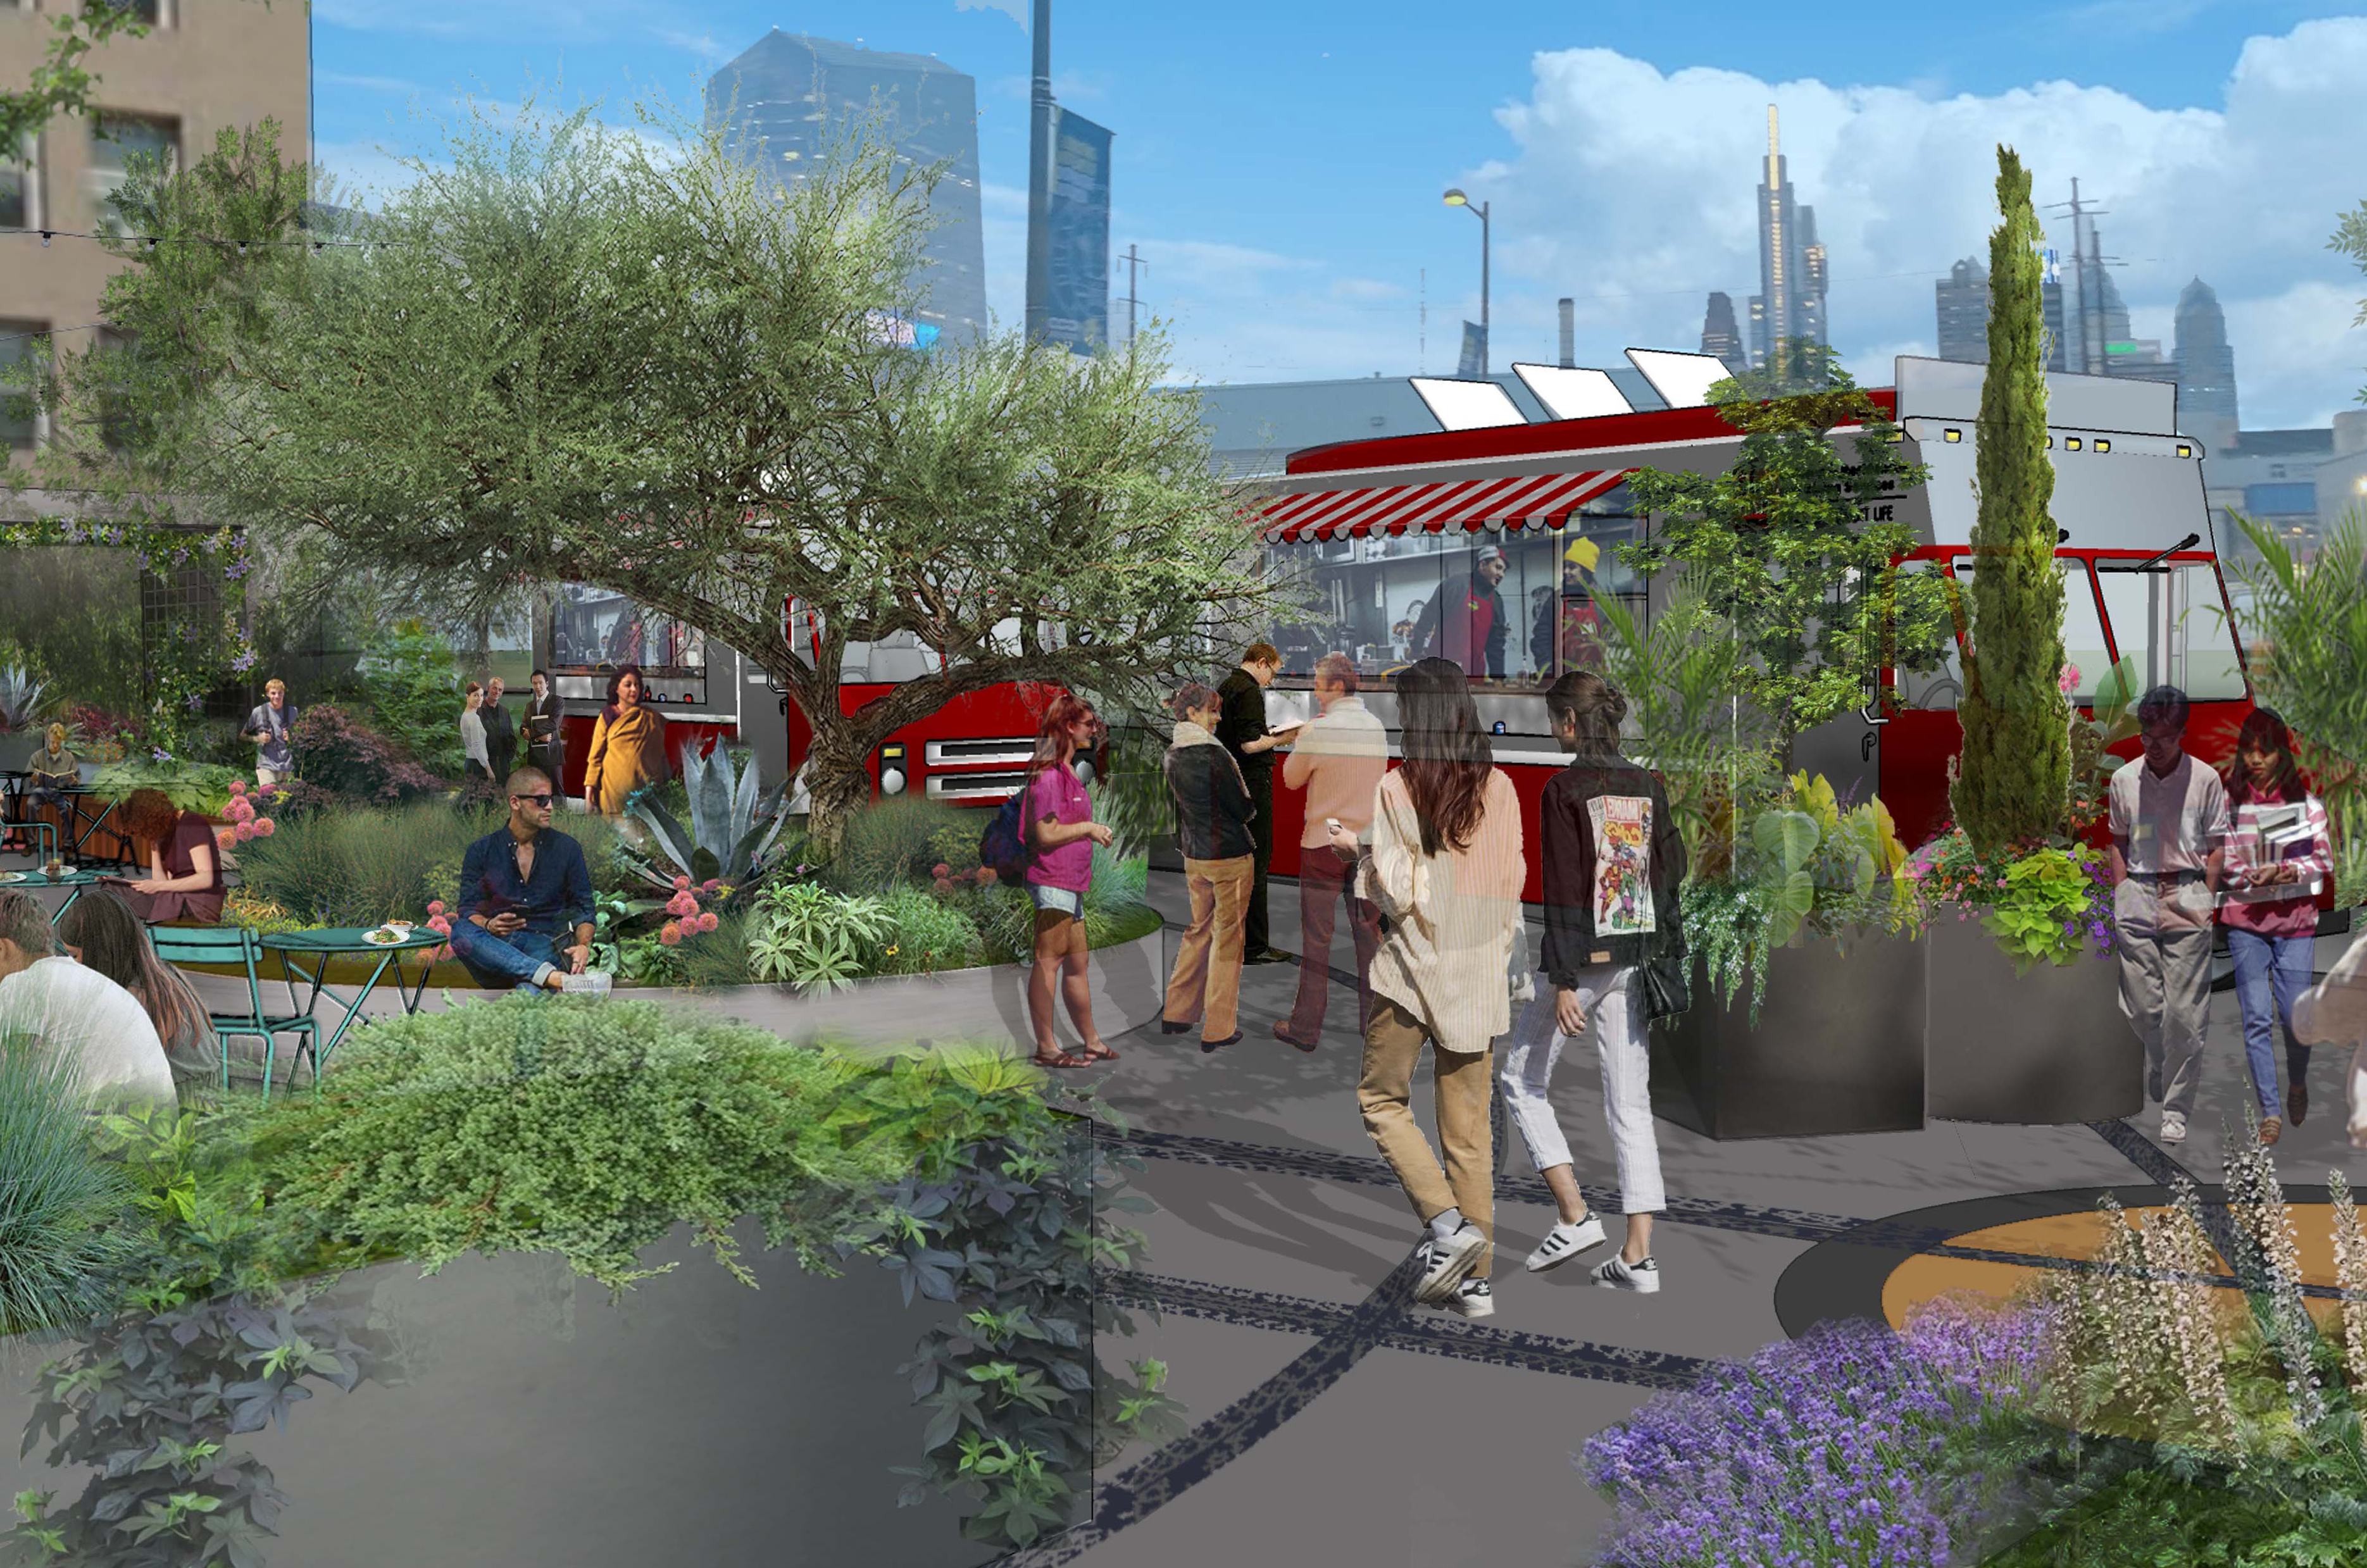 rendering of the garden at 32nd and Market Streets with seating and trucks